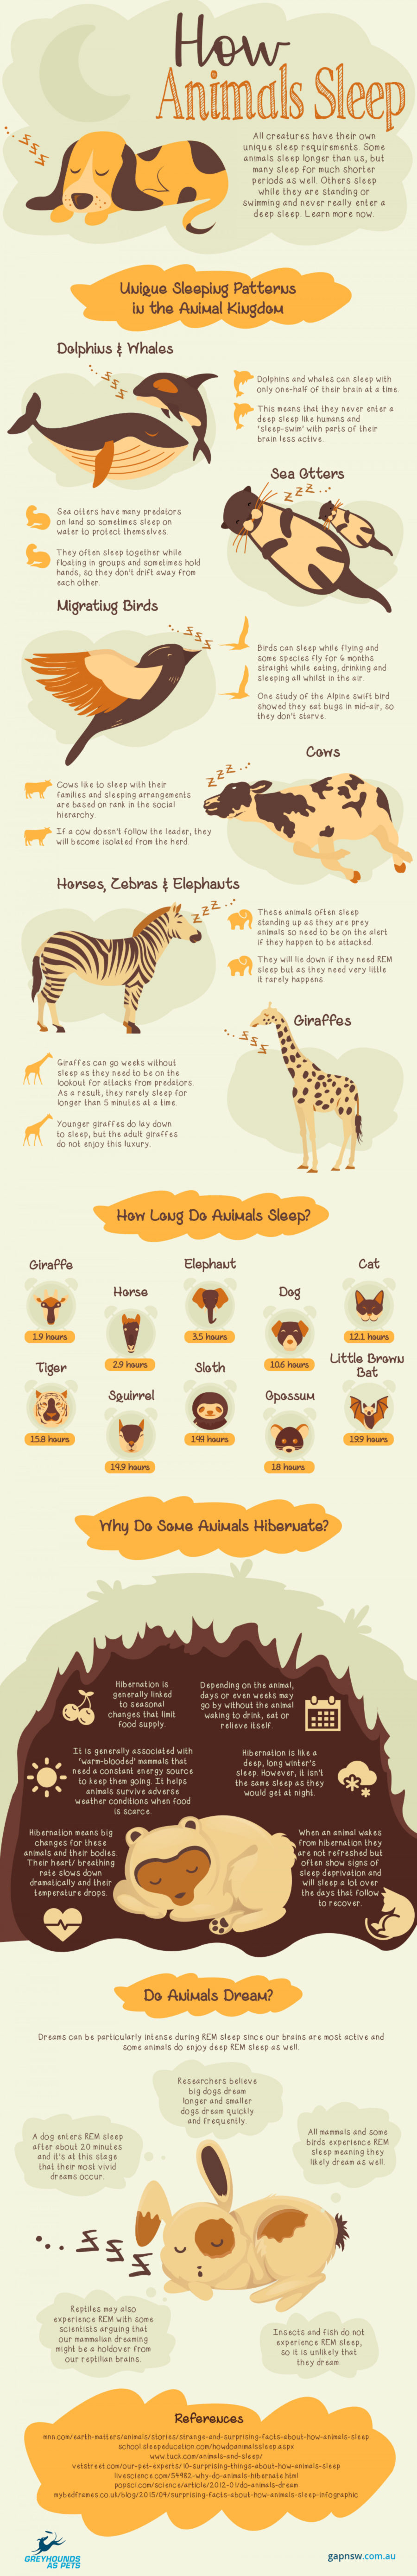 Animal-Sleeping-Habits-Explored-900x5558 | Animal Sleeping Habits Explored